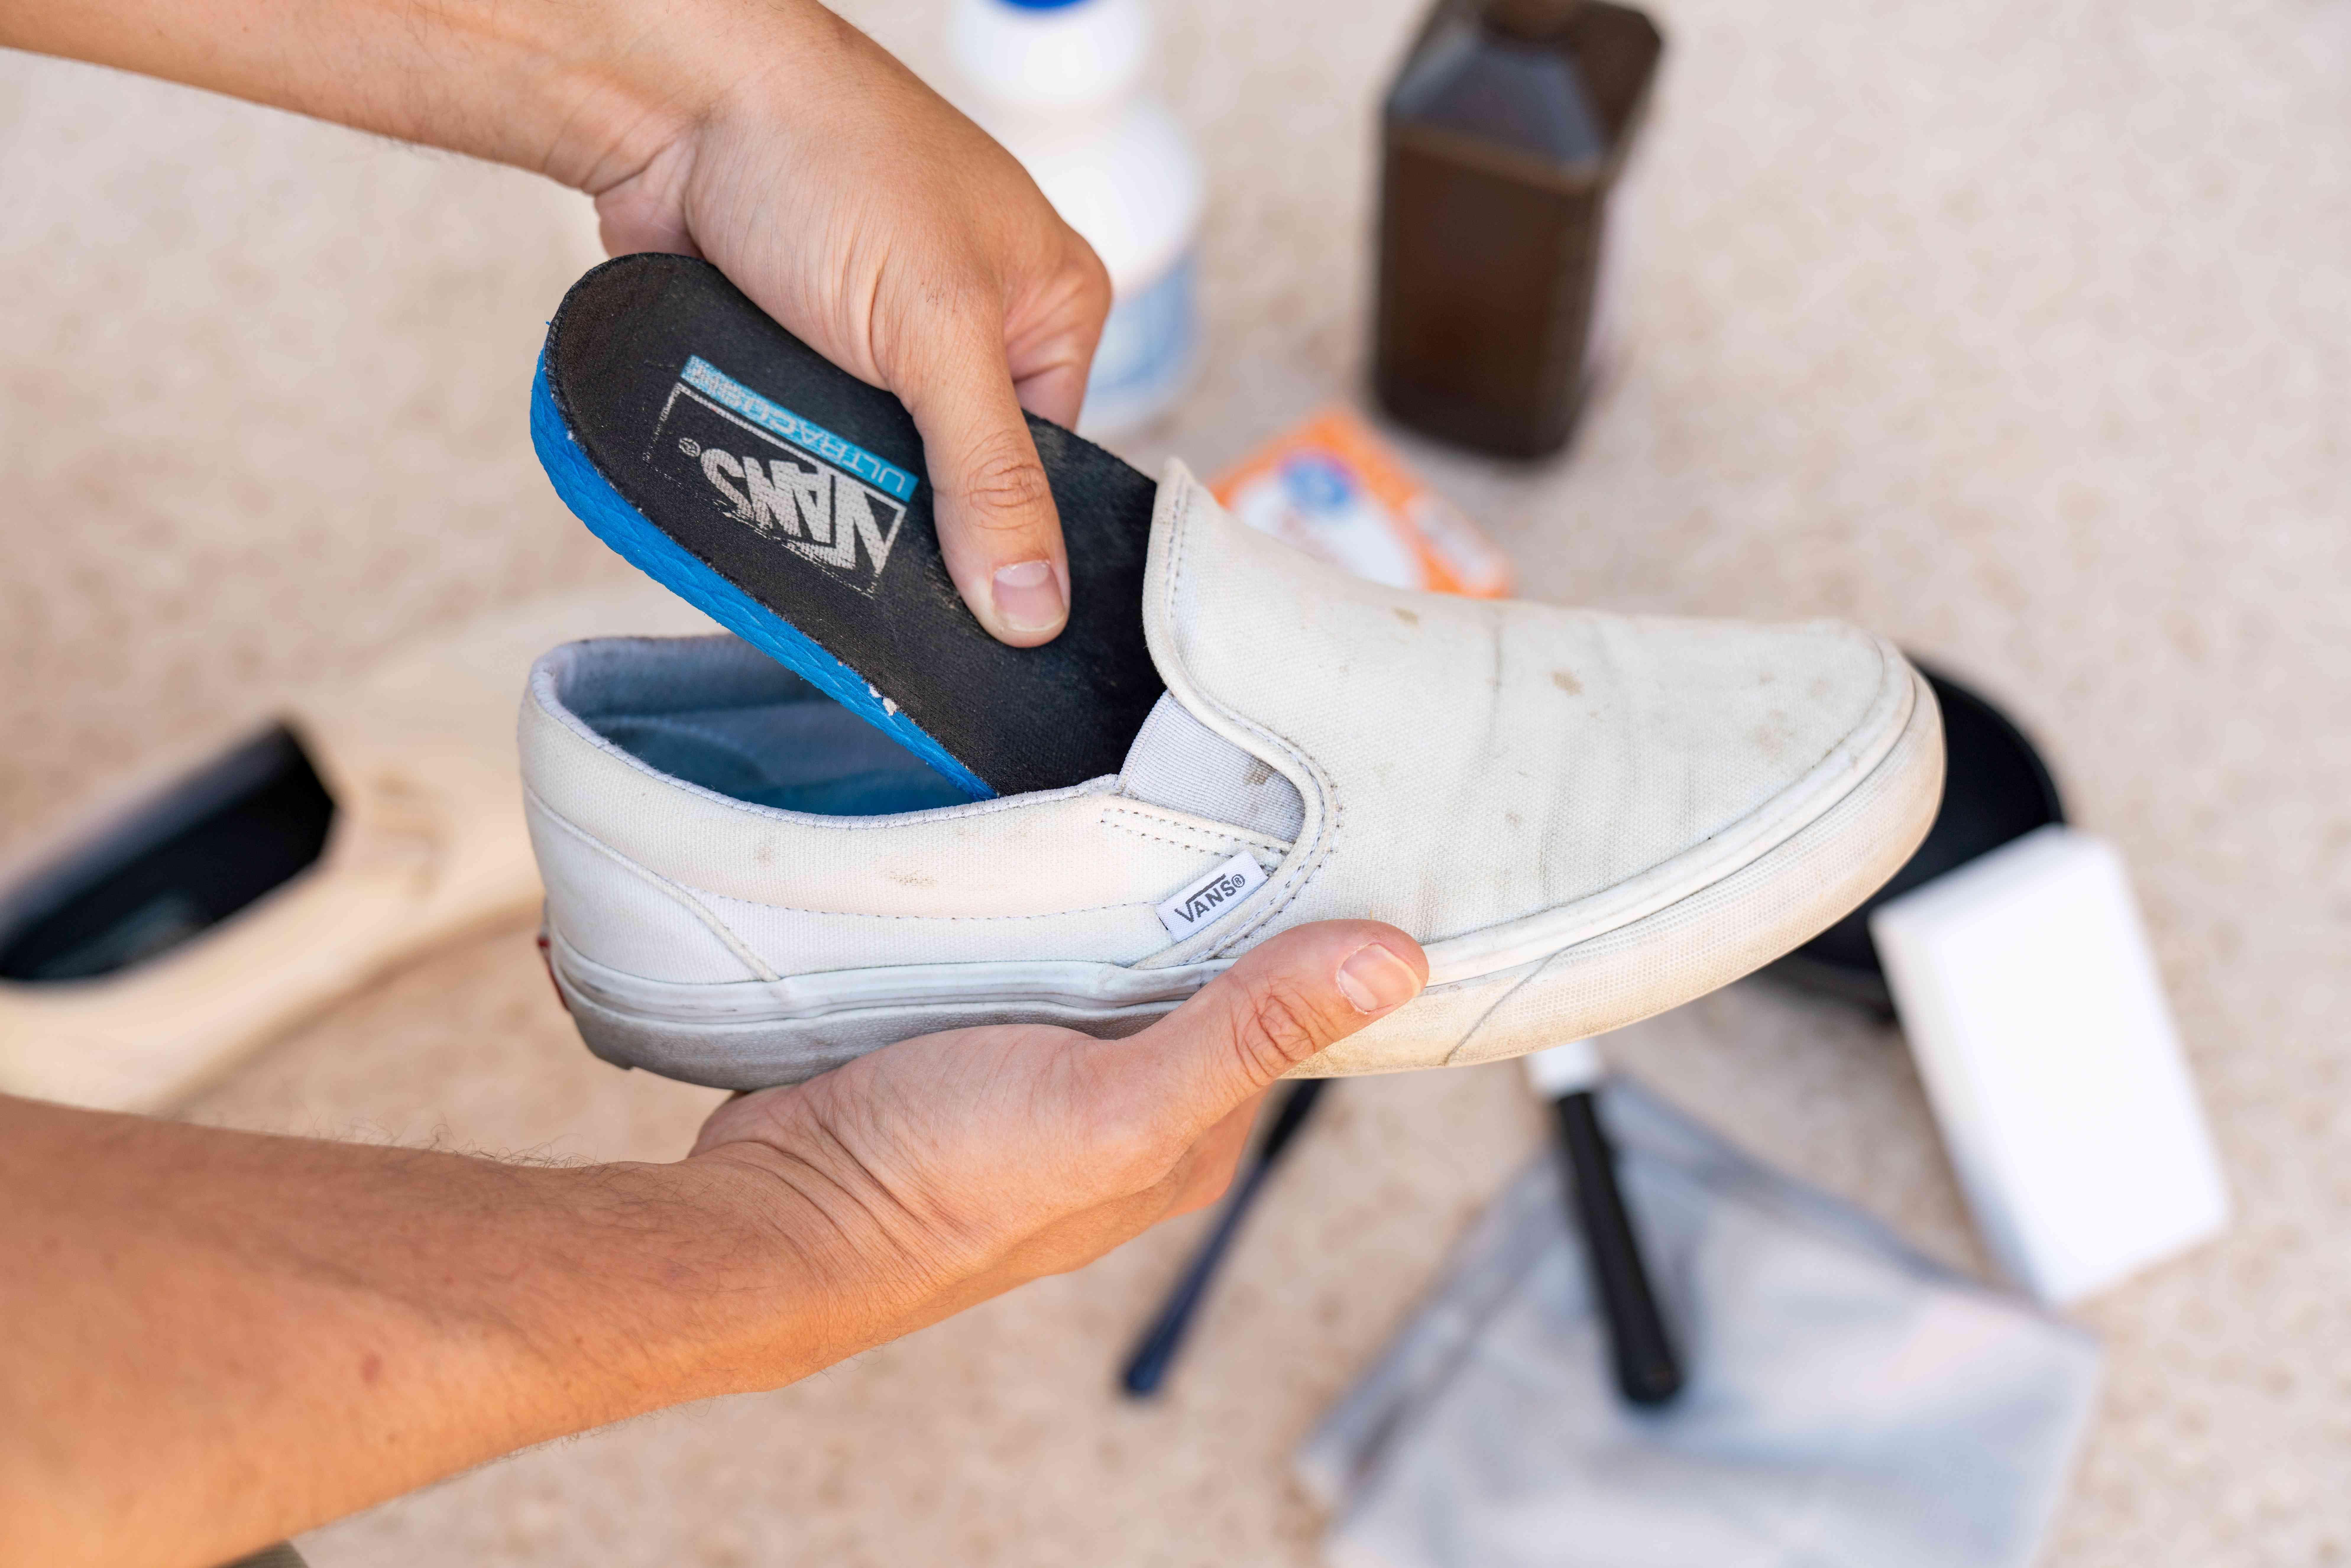 Insoles being removed from dirty white vans